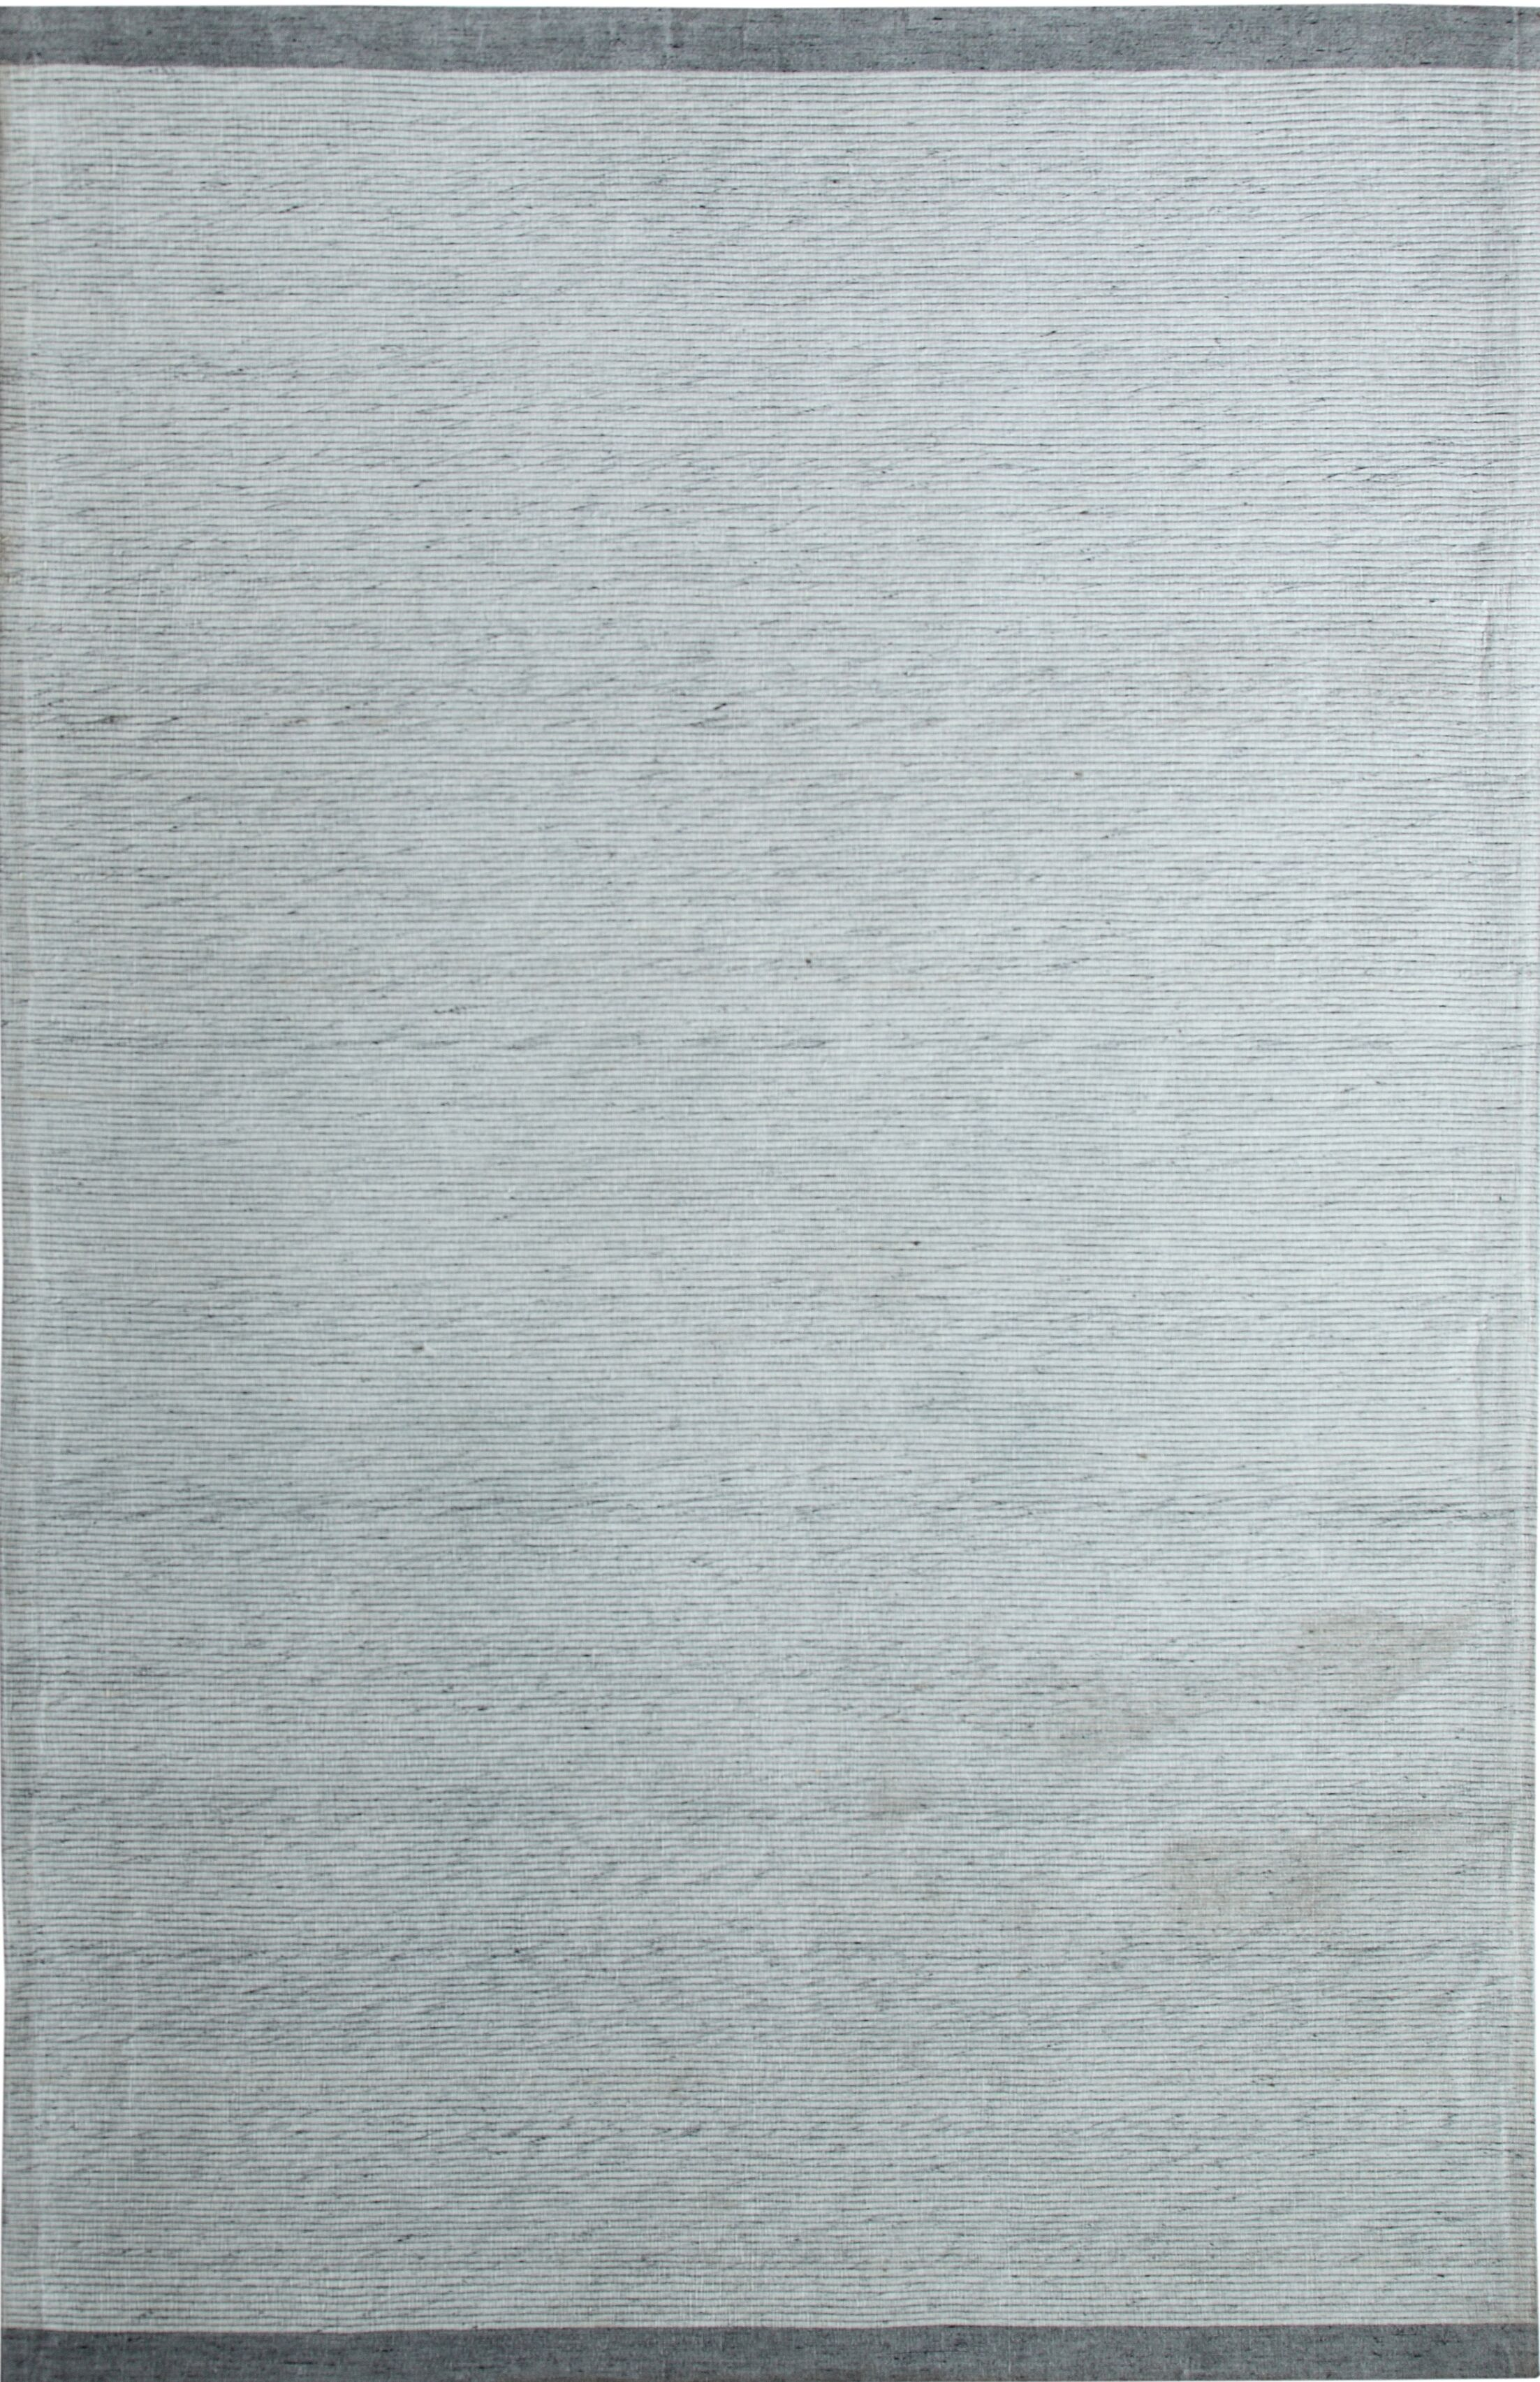 Hawtree Hand- Woven Silver/Grey Area Rug Rug Size: Rectangle 5' x 8'